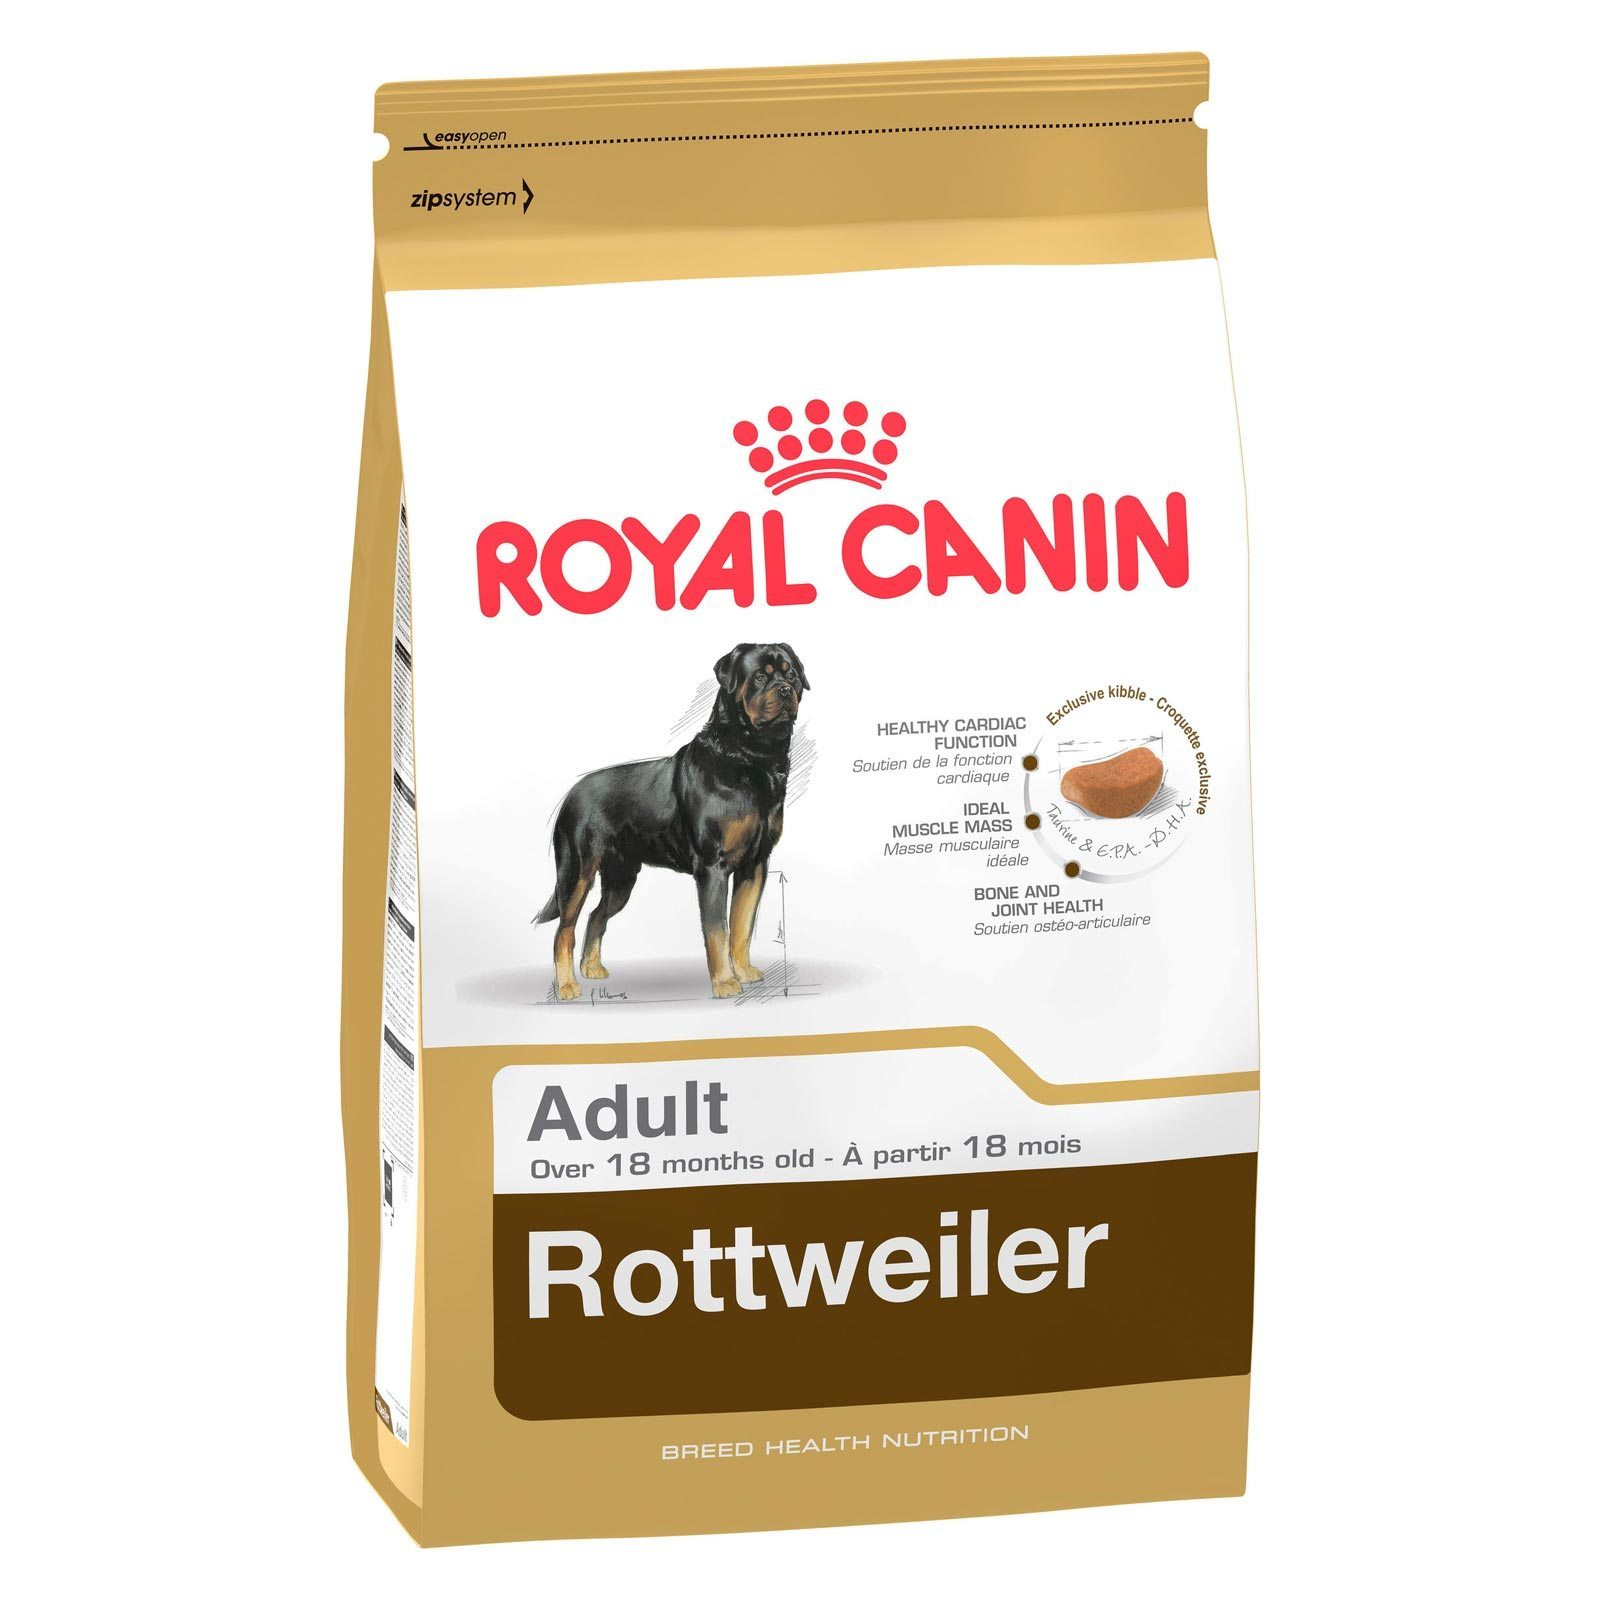 Royal Canin Rottweiler Adult